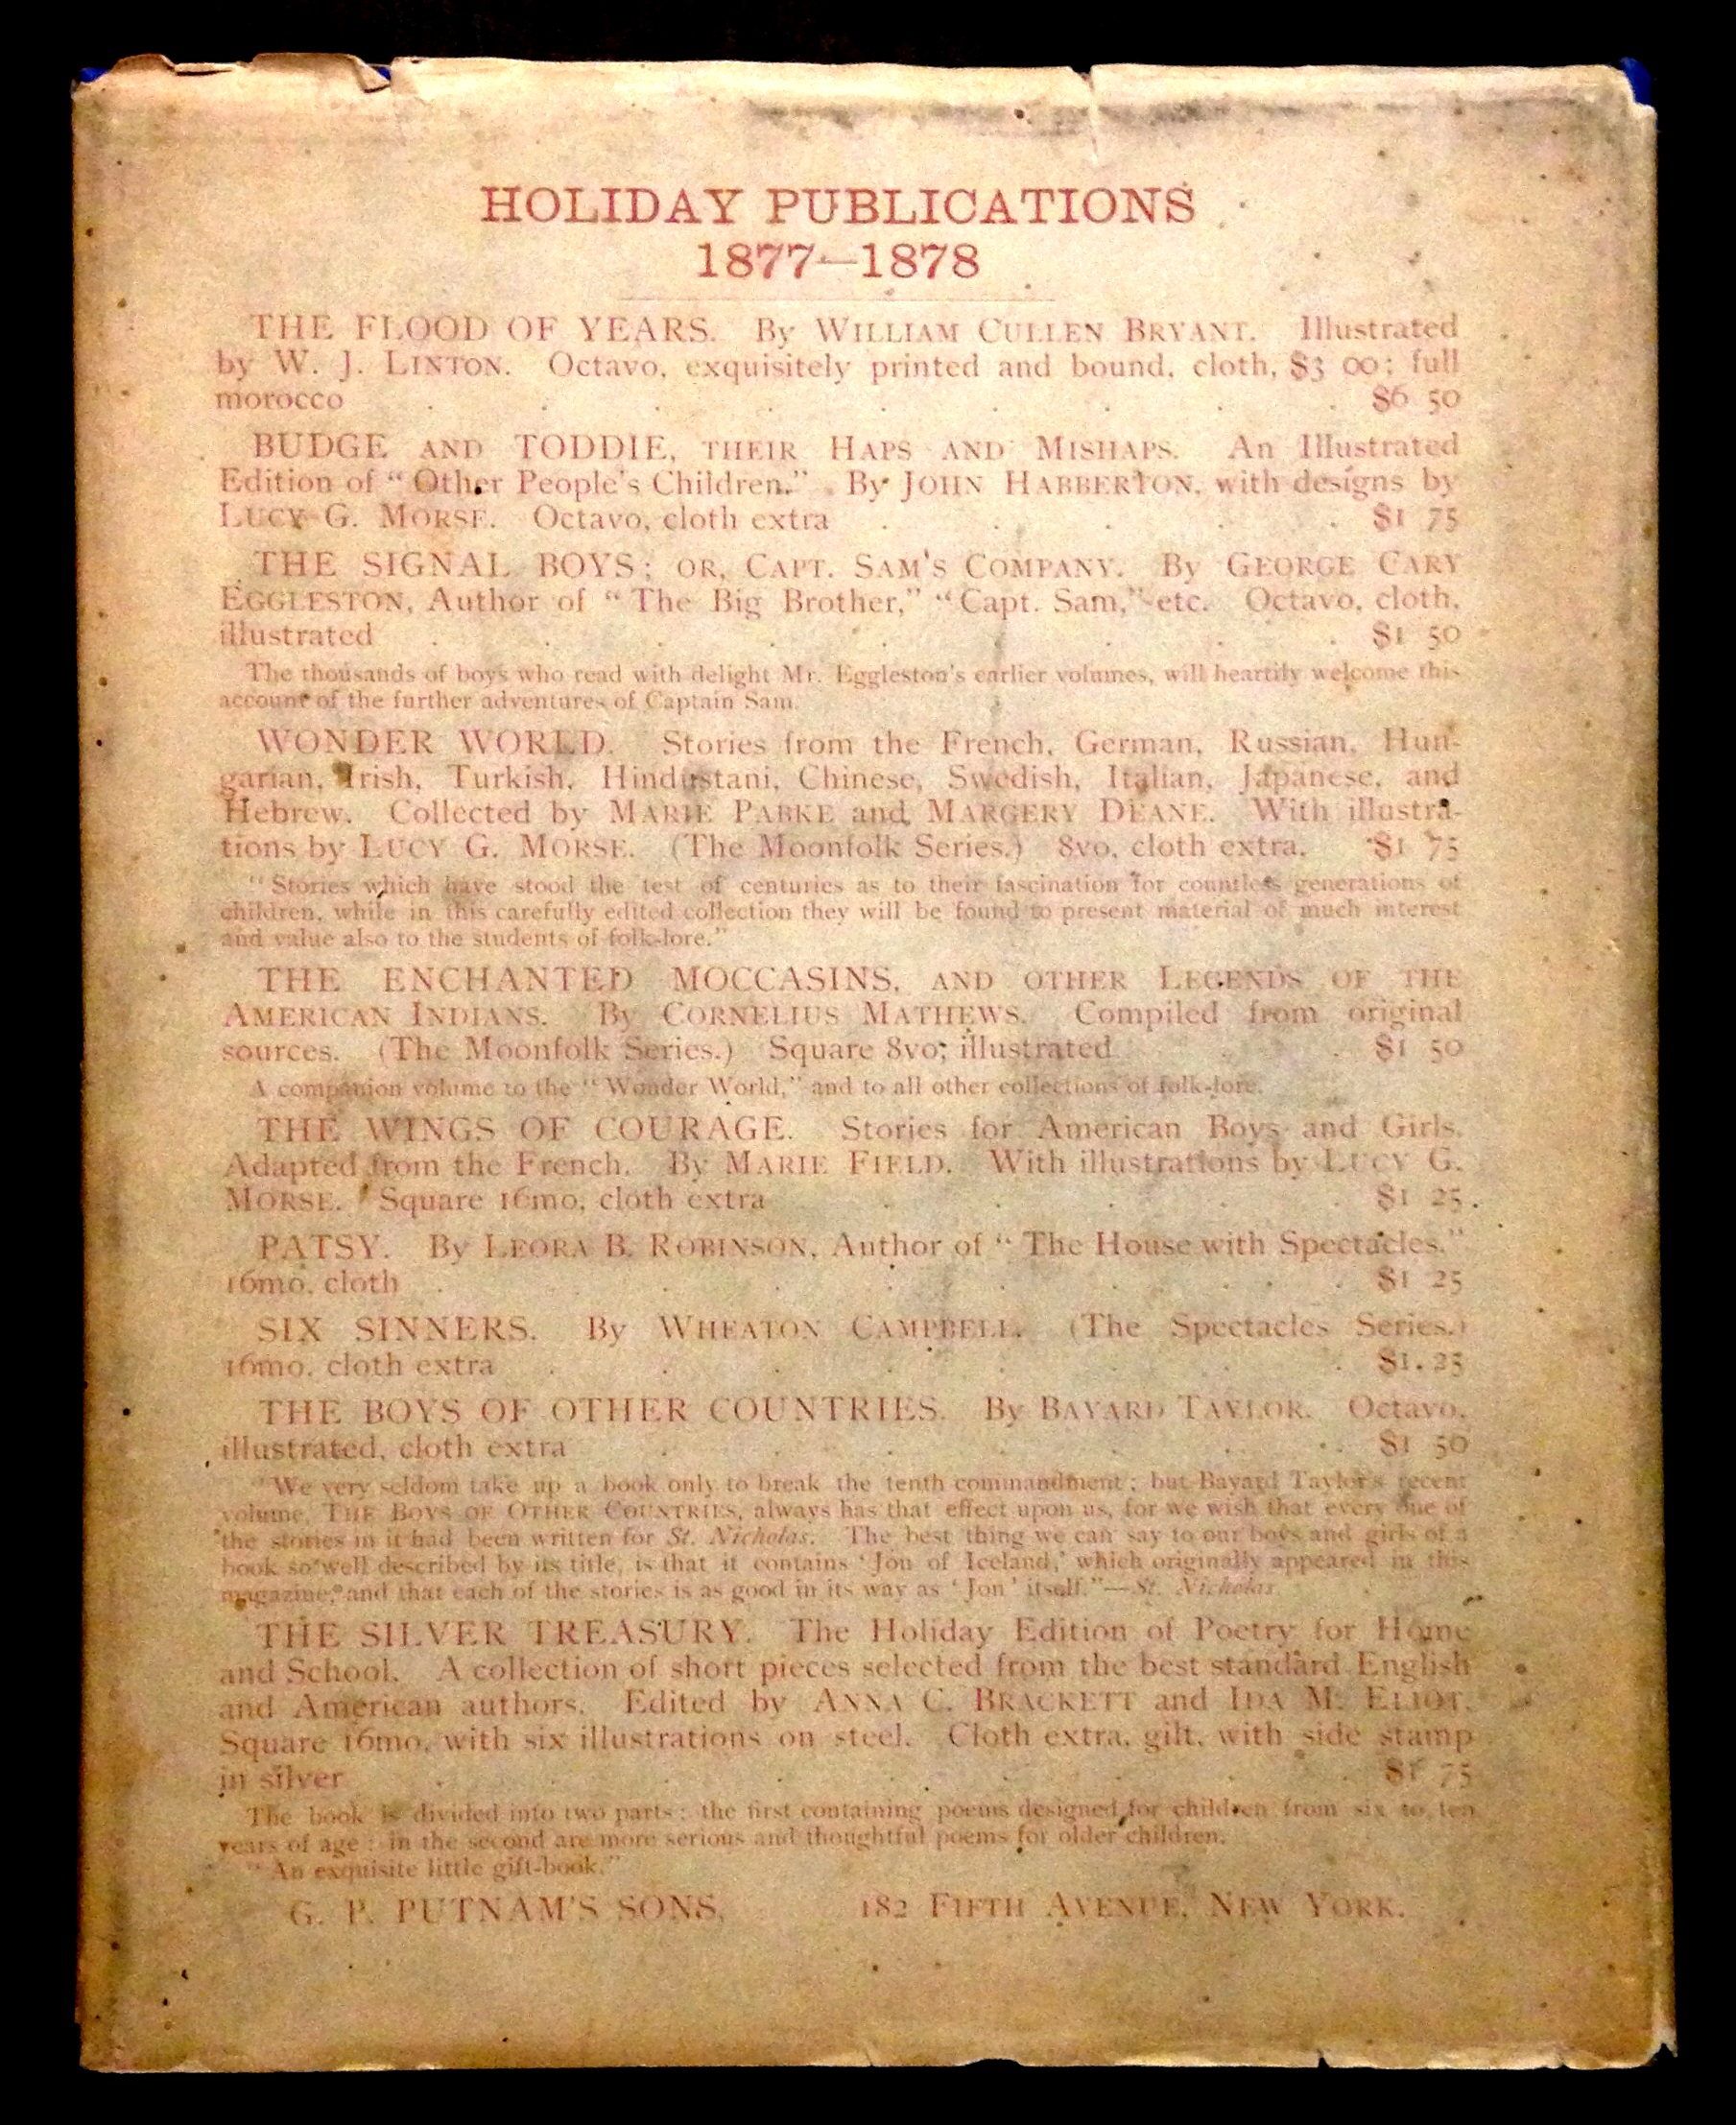 "The back panel of this dust jacket, on a presentation copy of William Cullen Bryant's The Flood of Years (New York: G.P. Putnam's sons, 1878) is devoted to ads for this and other Putnam titles, with a new marketing innovation: smaller-print ""blurbs"" have been added for several books."